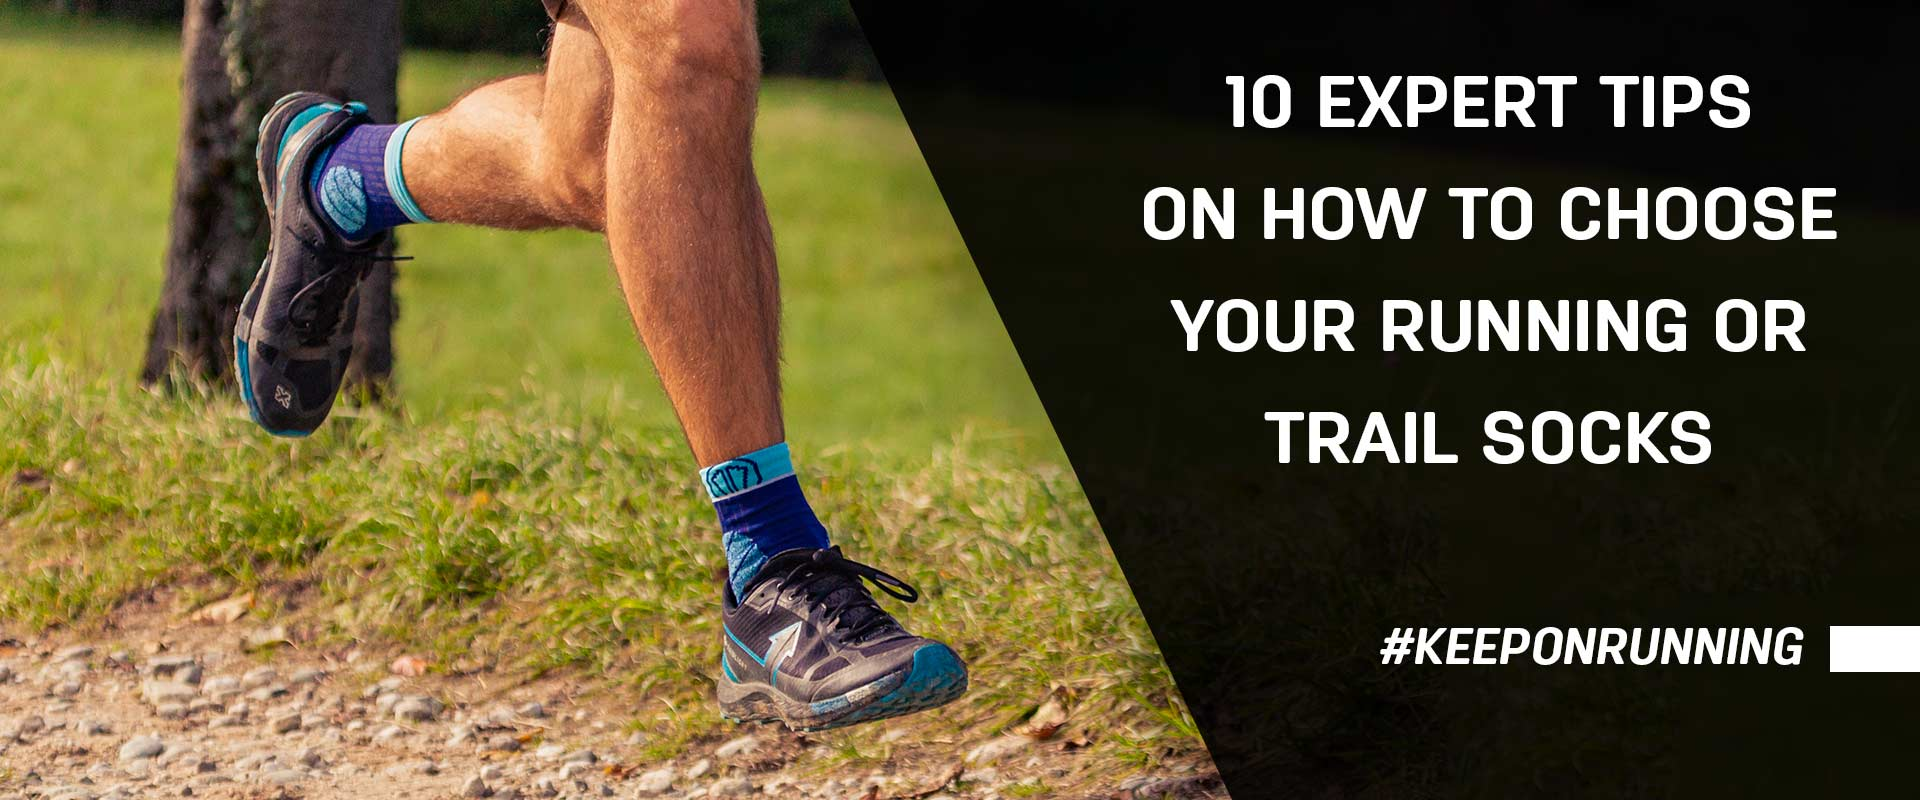 How to choose your road or trail running socks?